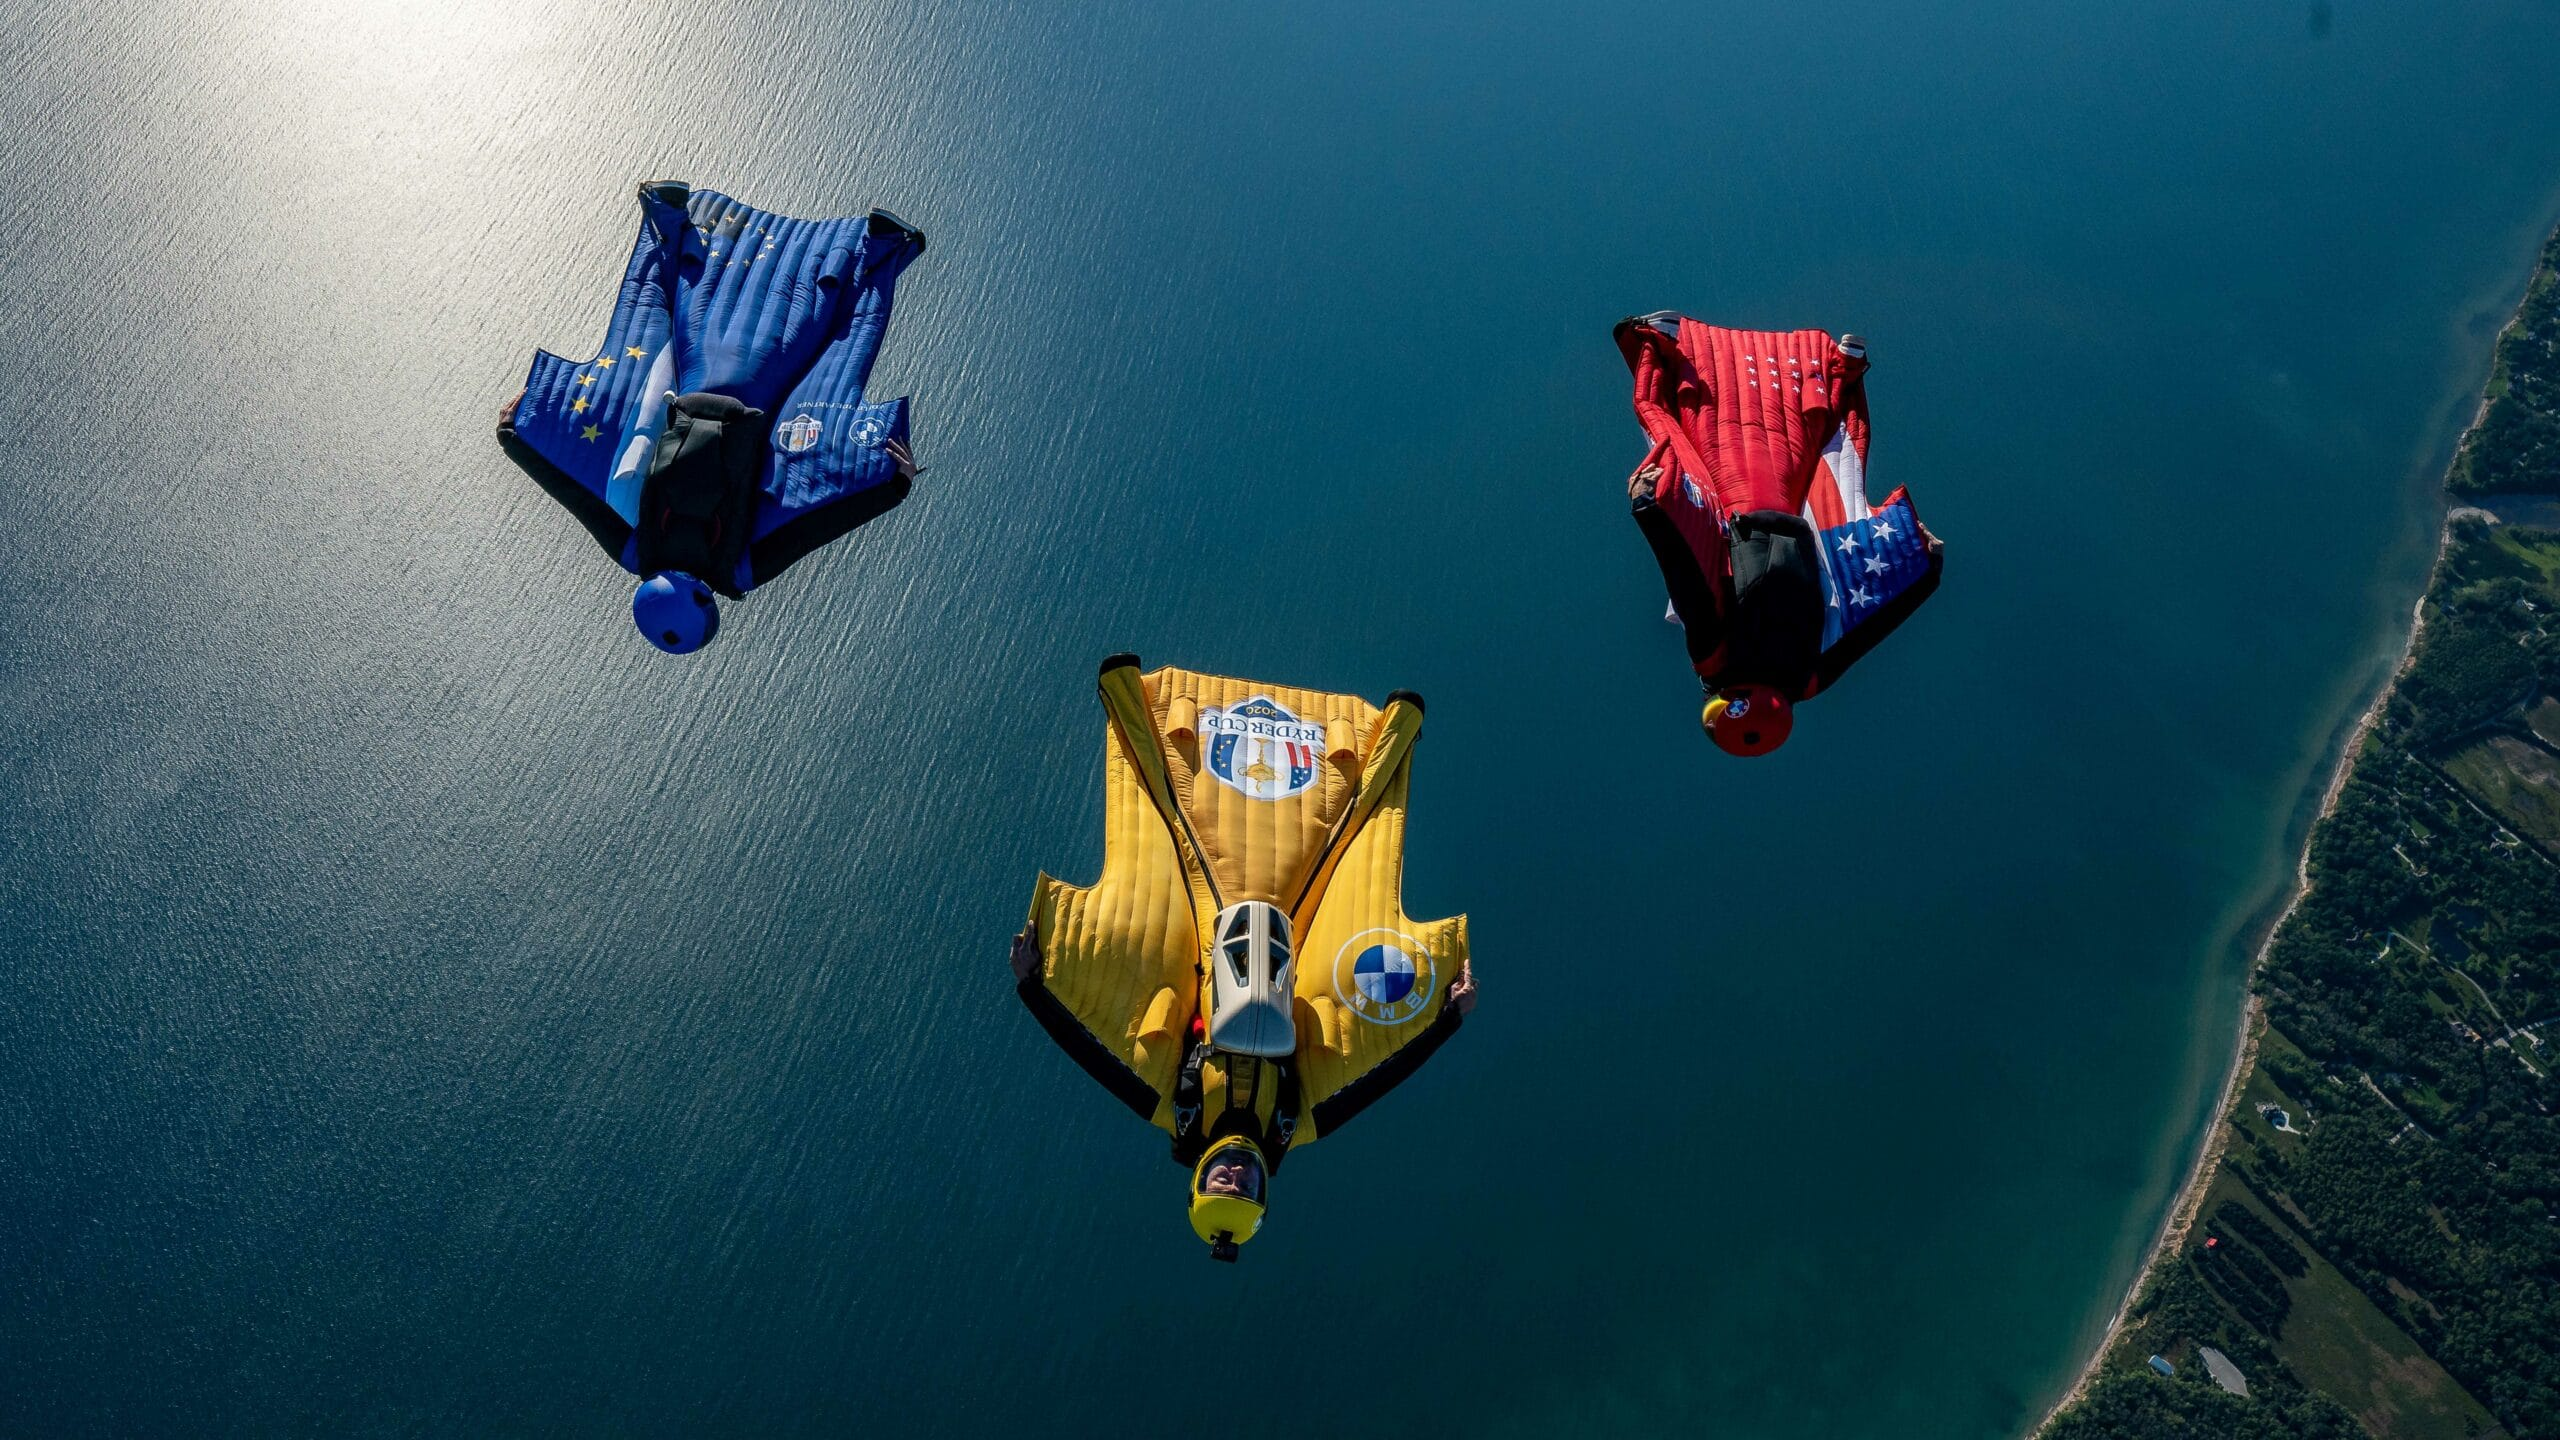 BMW prepared an air stunt for the US Ryder Cup opening